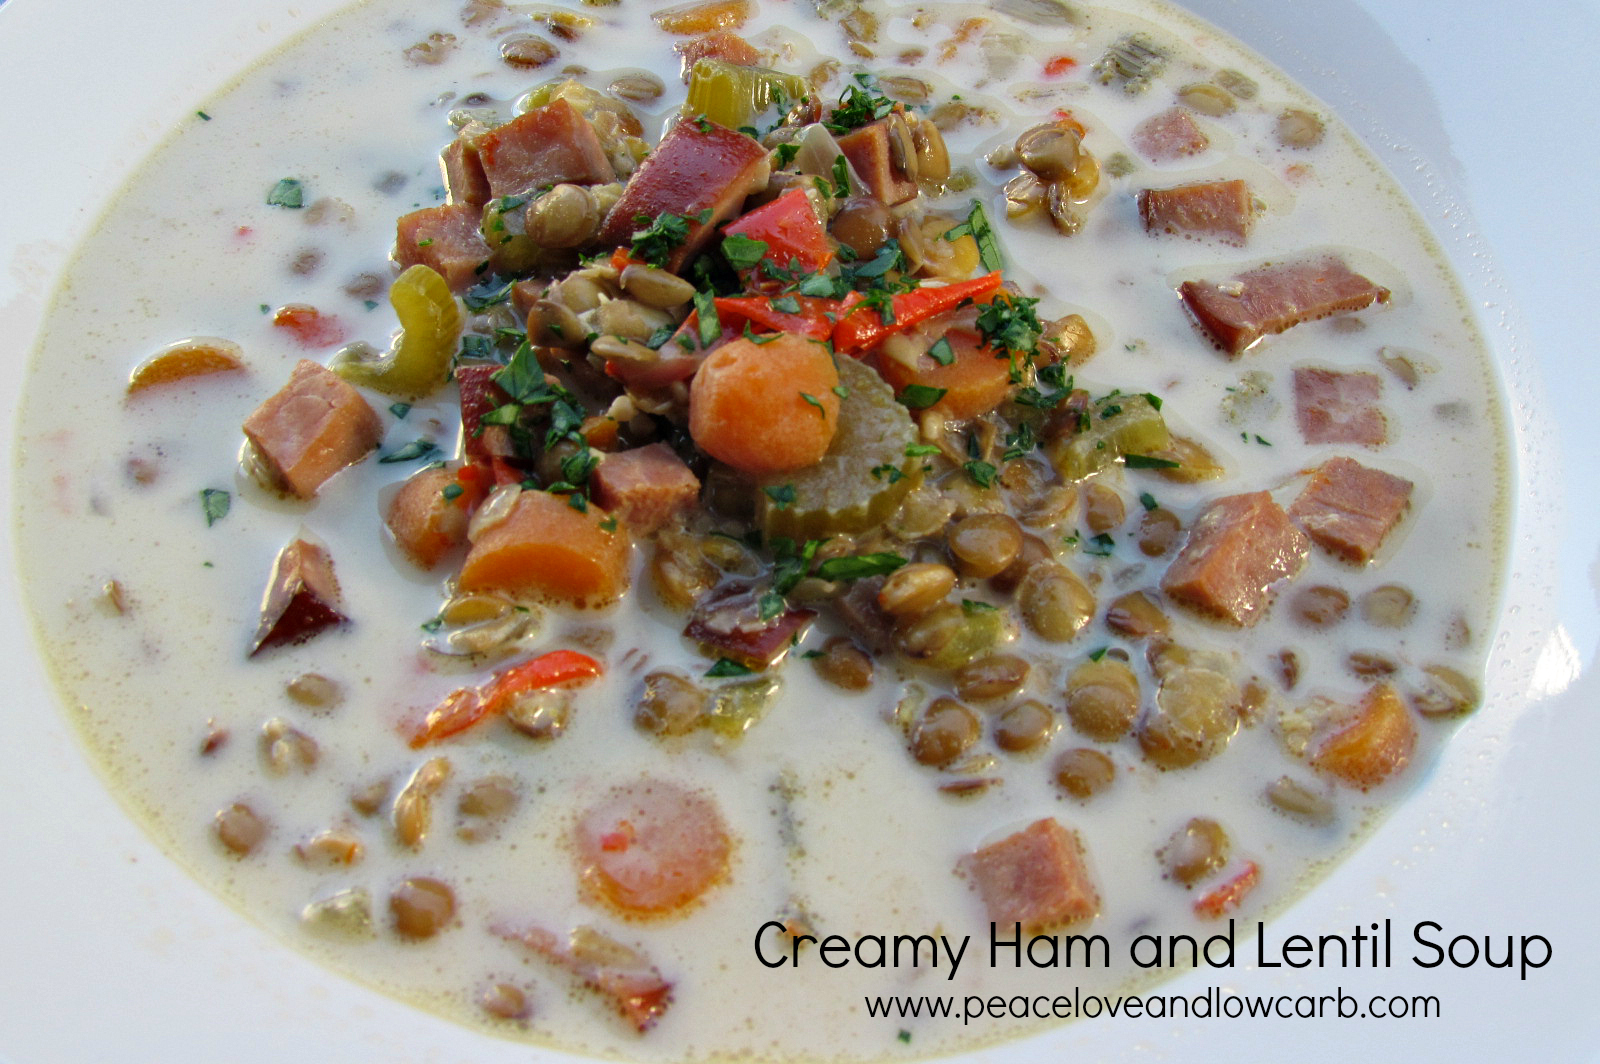 Creamy Ham and Lentil Soup